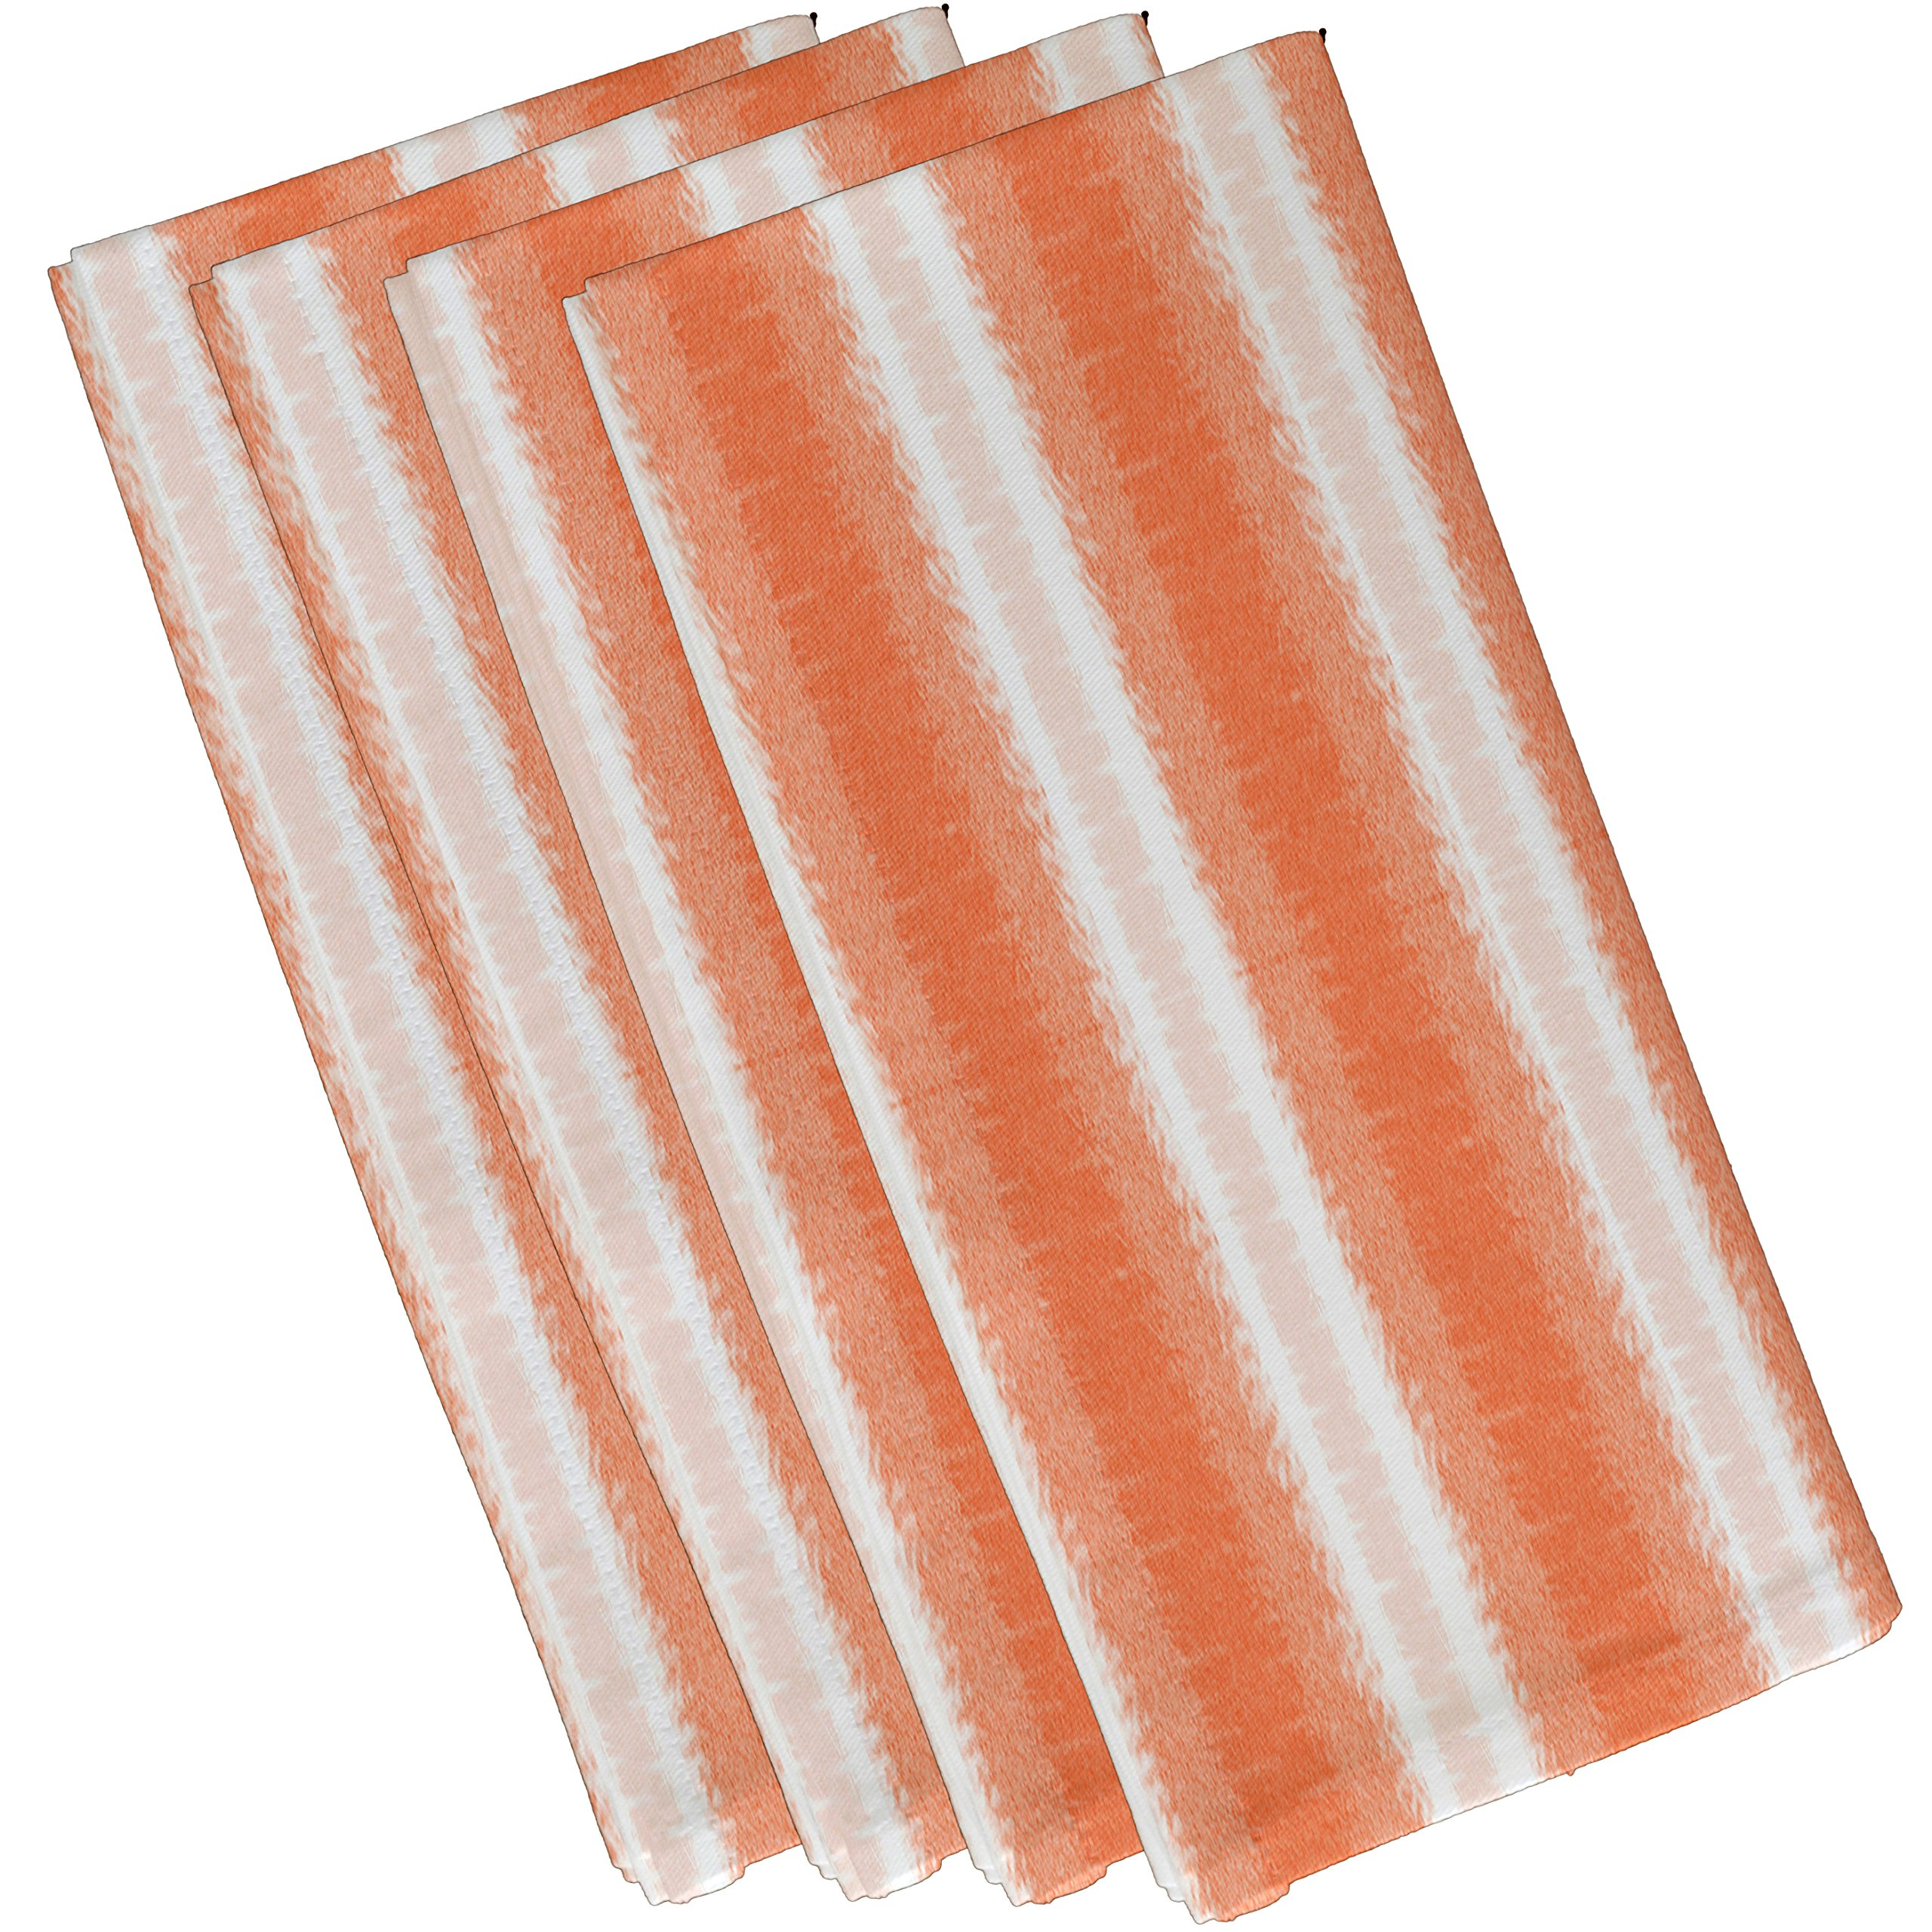 E by design N4S776O1 Sea Lines Stripe Print Napkin (Set of 4), 19'' x 19'', Orange